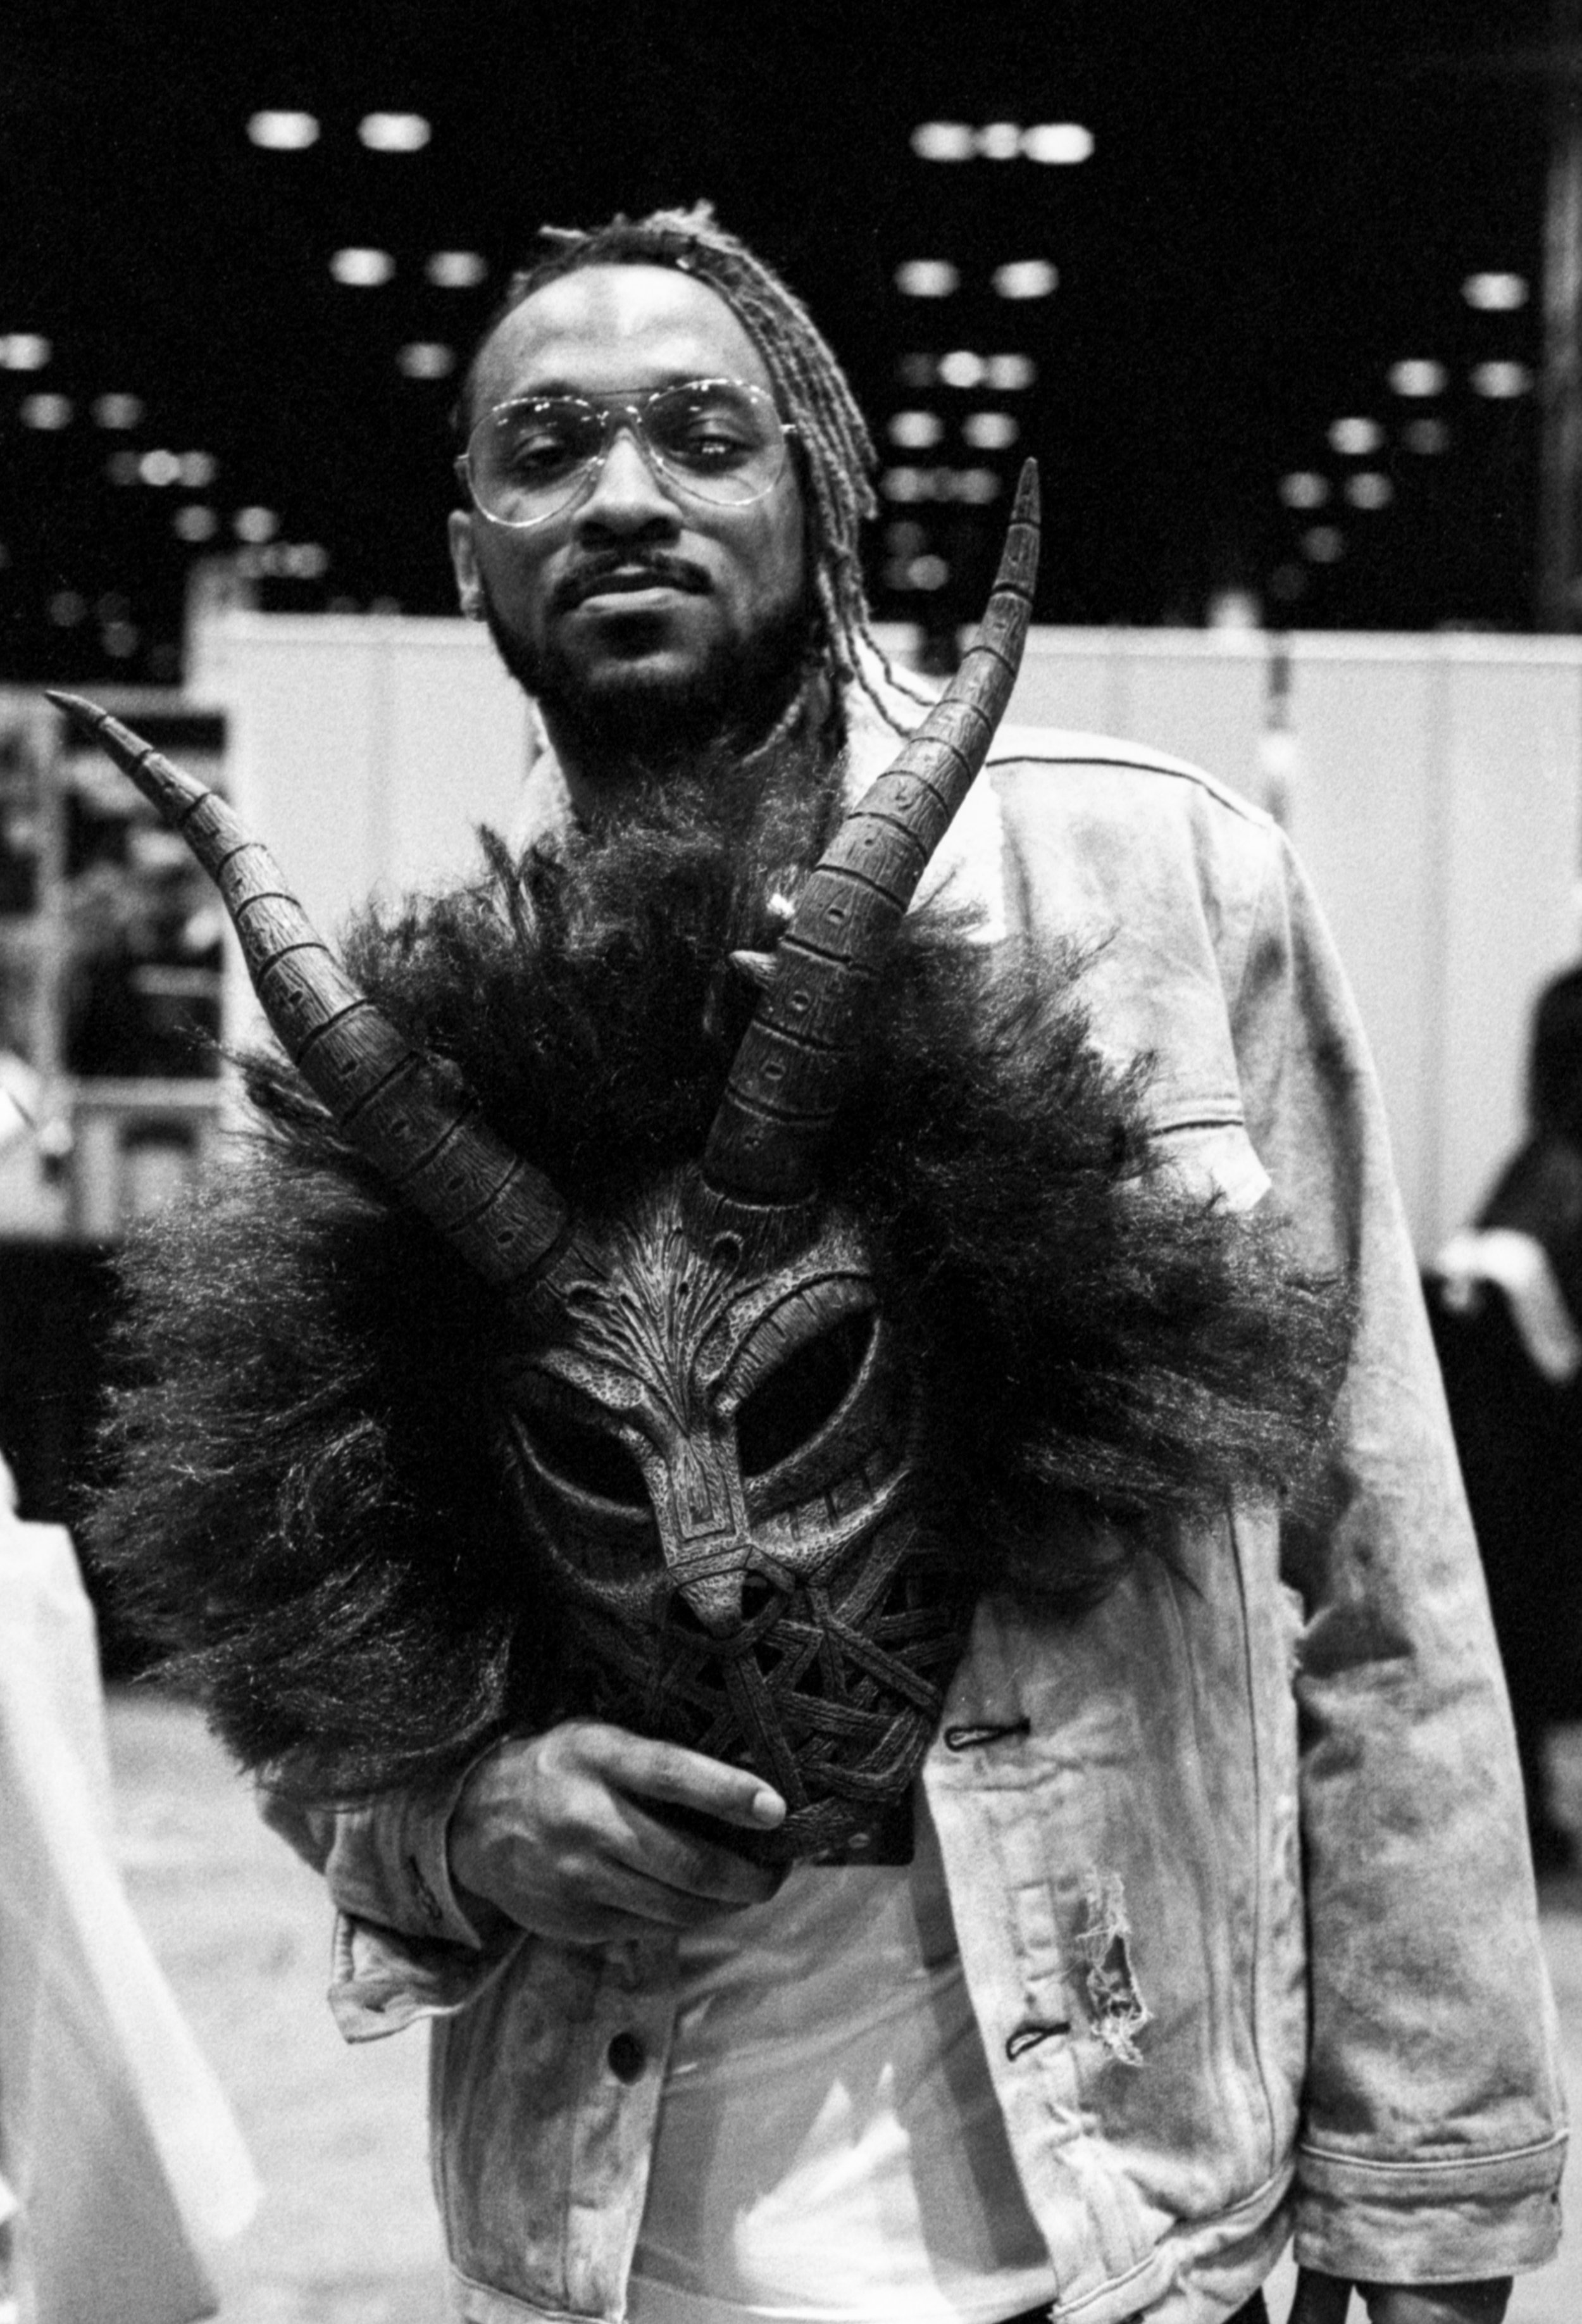 There was a lot of Black Panther cosplay, but this was one of my favorite low-key Killmonger looks.